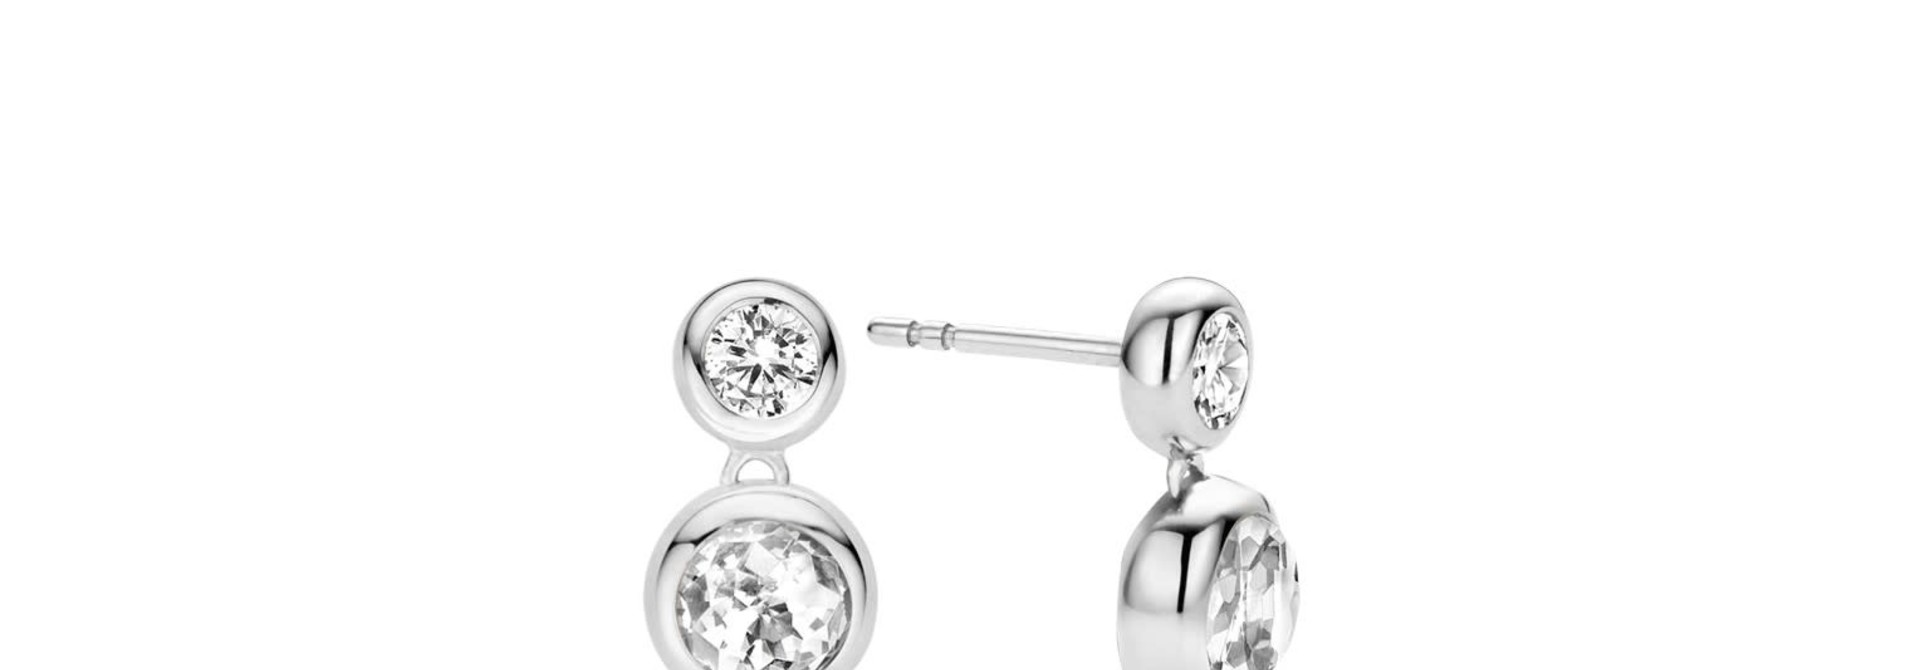 TI SENTO - Milano Earrings 7746ZI